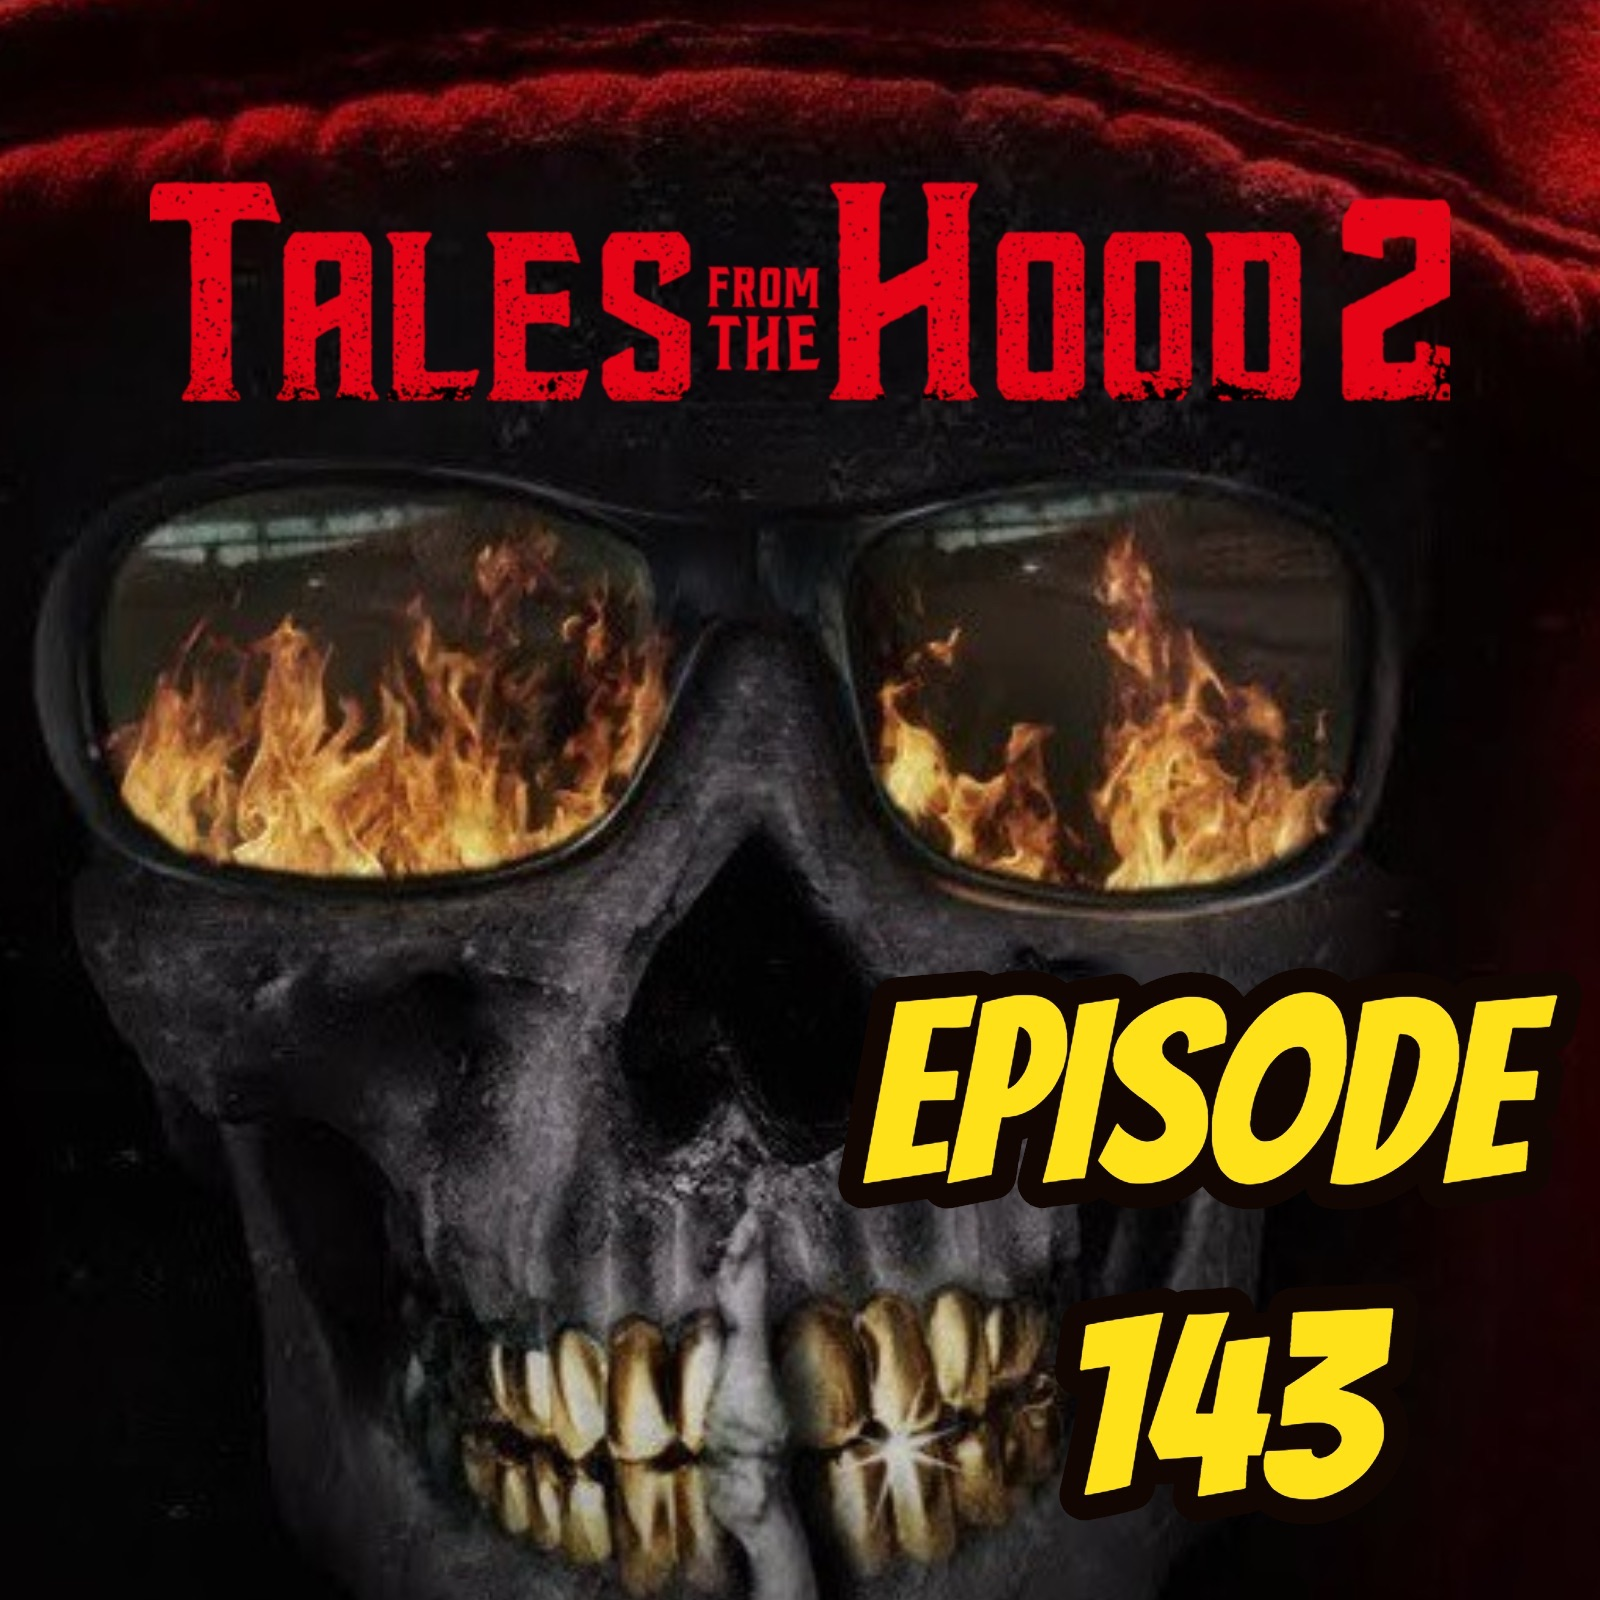 Tales from the Hood 2 - Episode 143